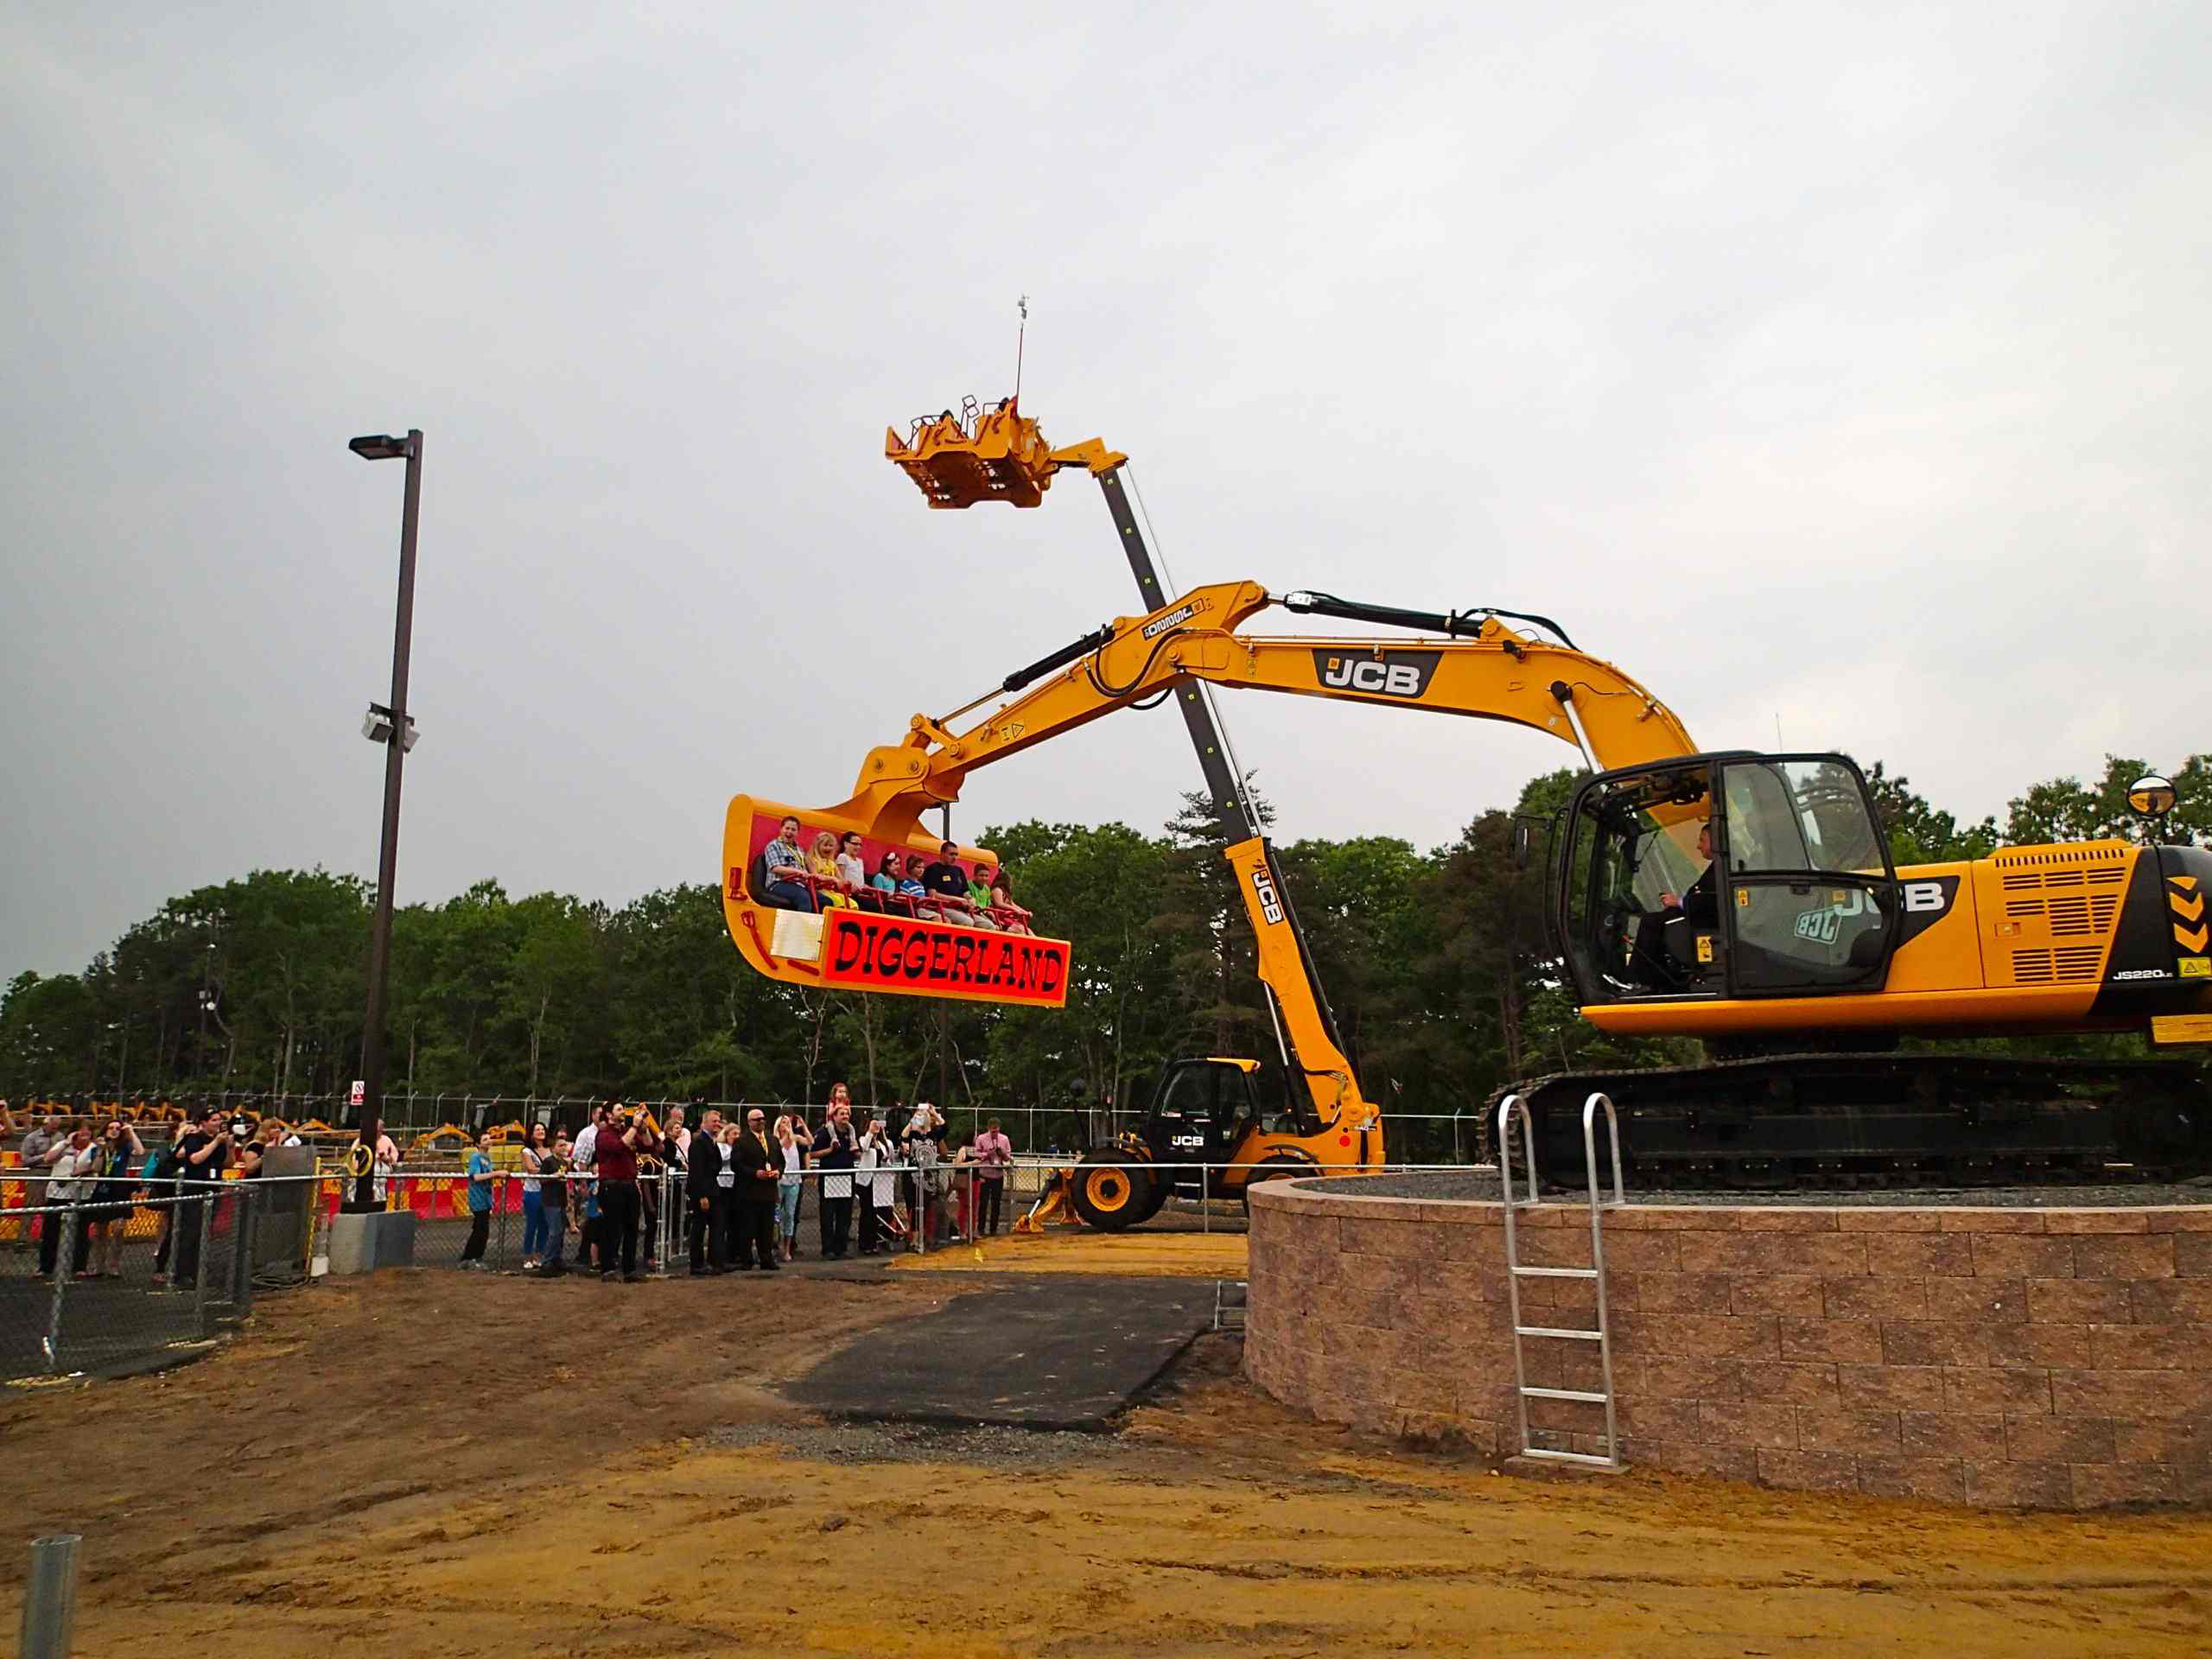 Construction Equipment Theme Park Now Open